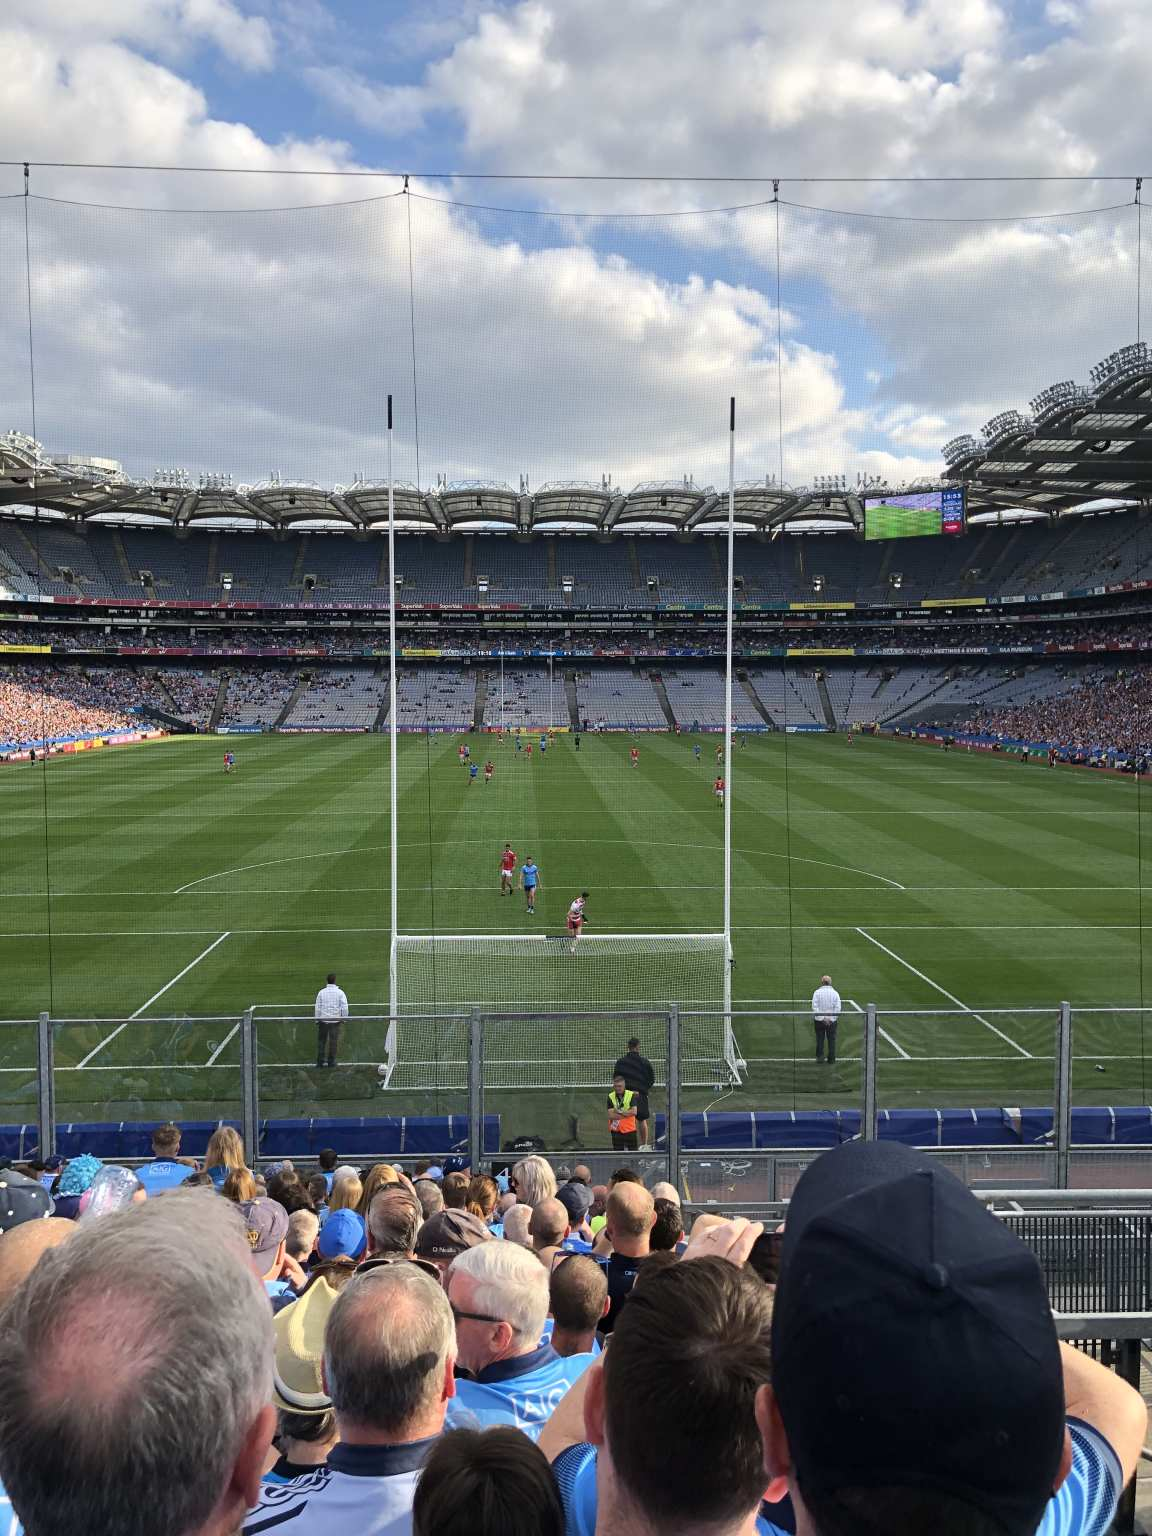 Image of the Crone Park pitch from Hill 16 at the Dublin v Cork game which Dublin won thanks to three late goals